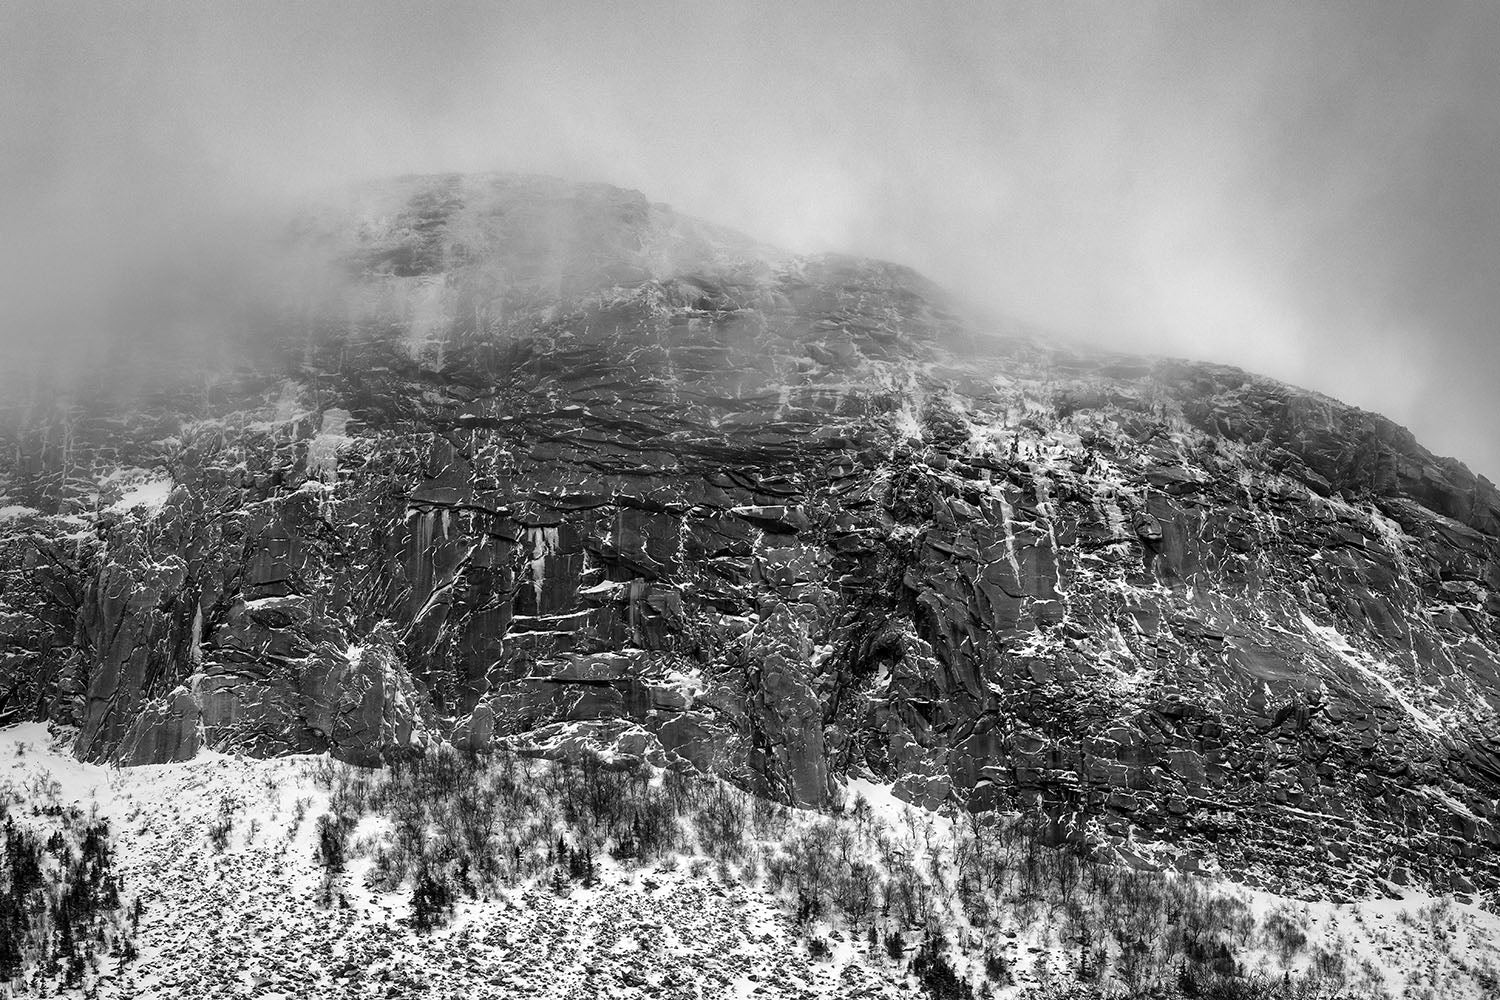 Landscape photo of snow on Cannon Mountain - White Mountains, New Hampshire